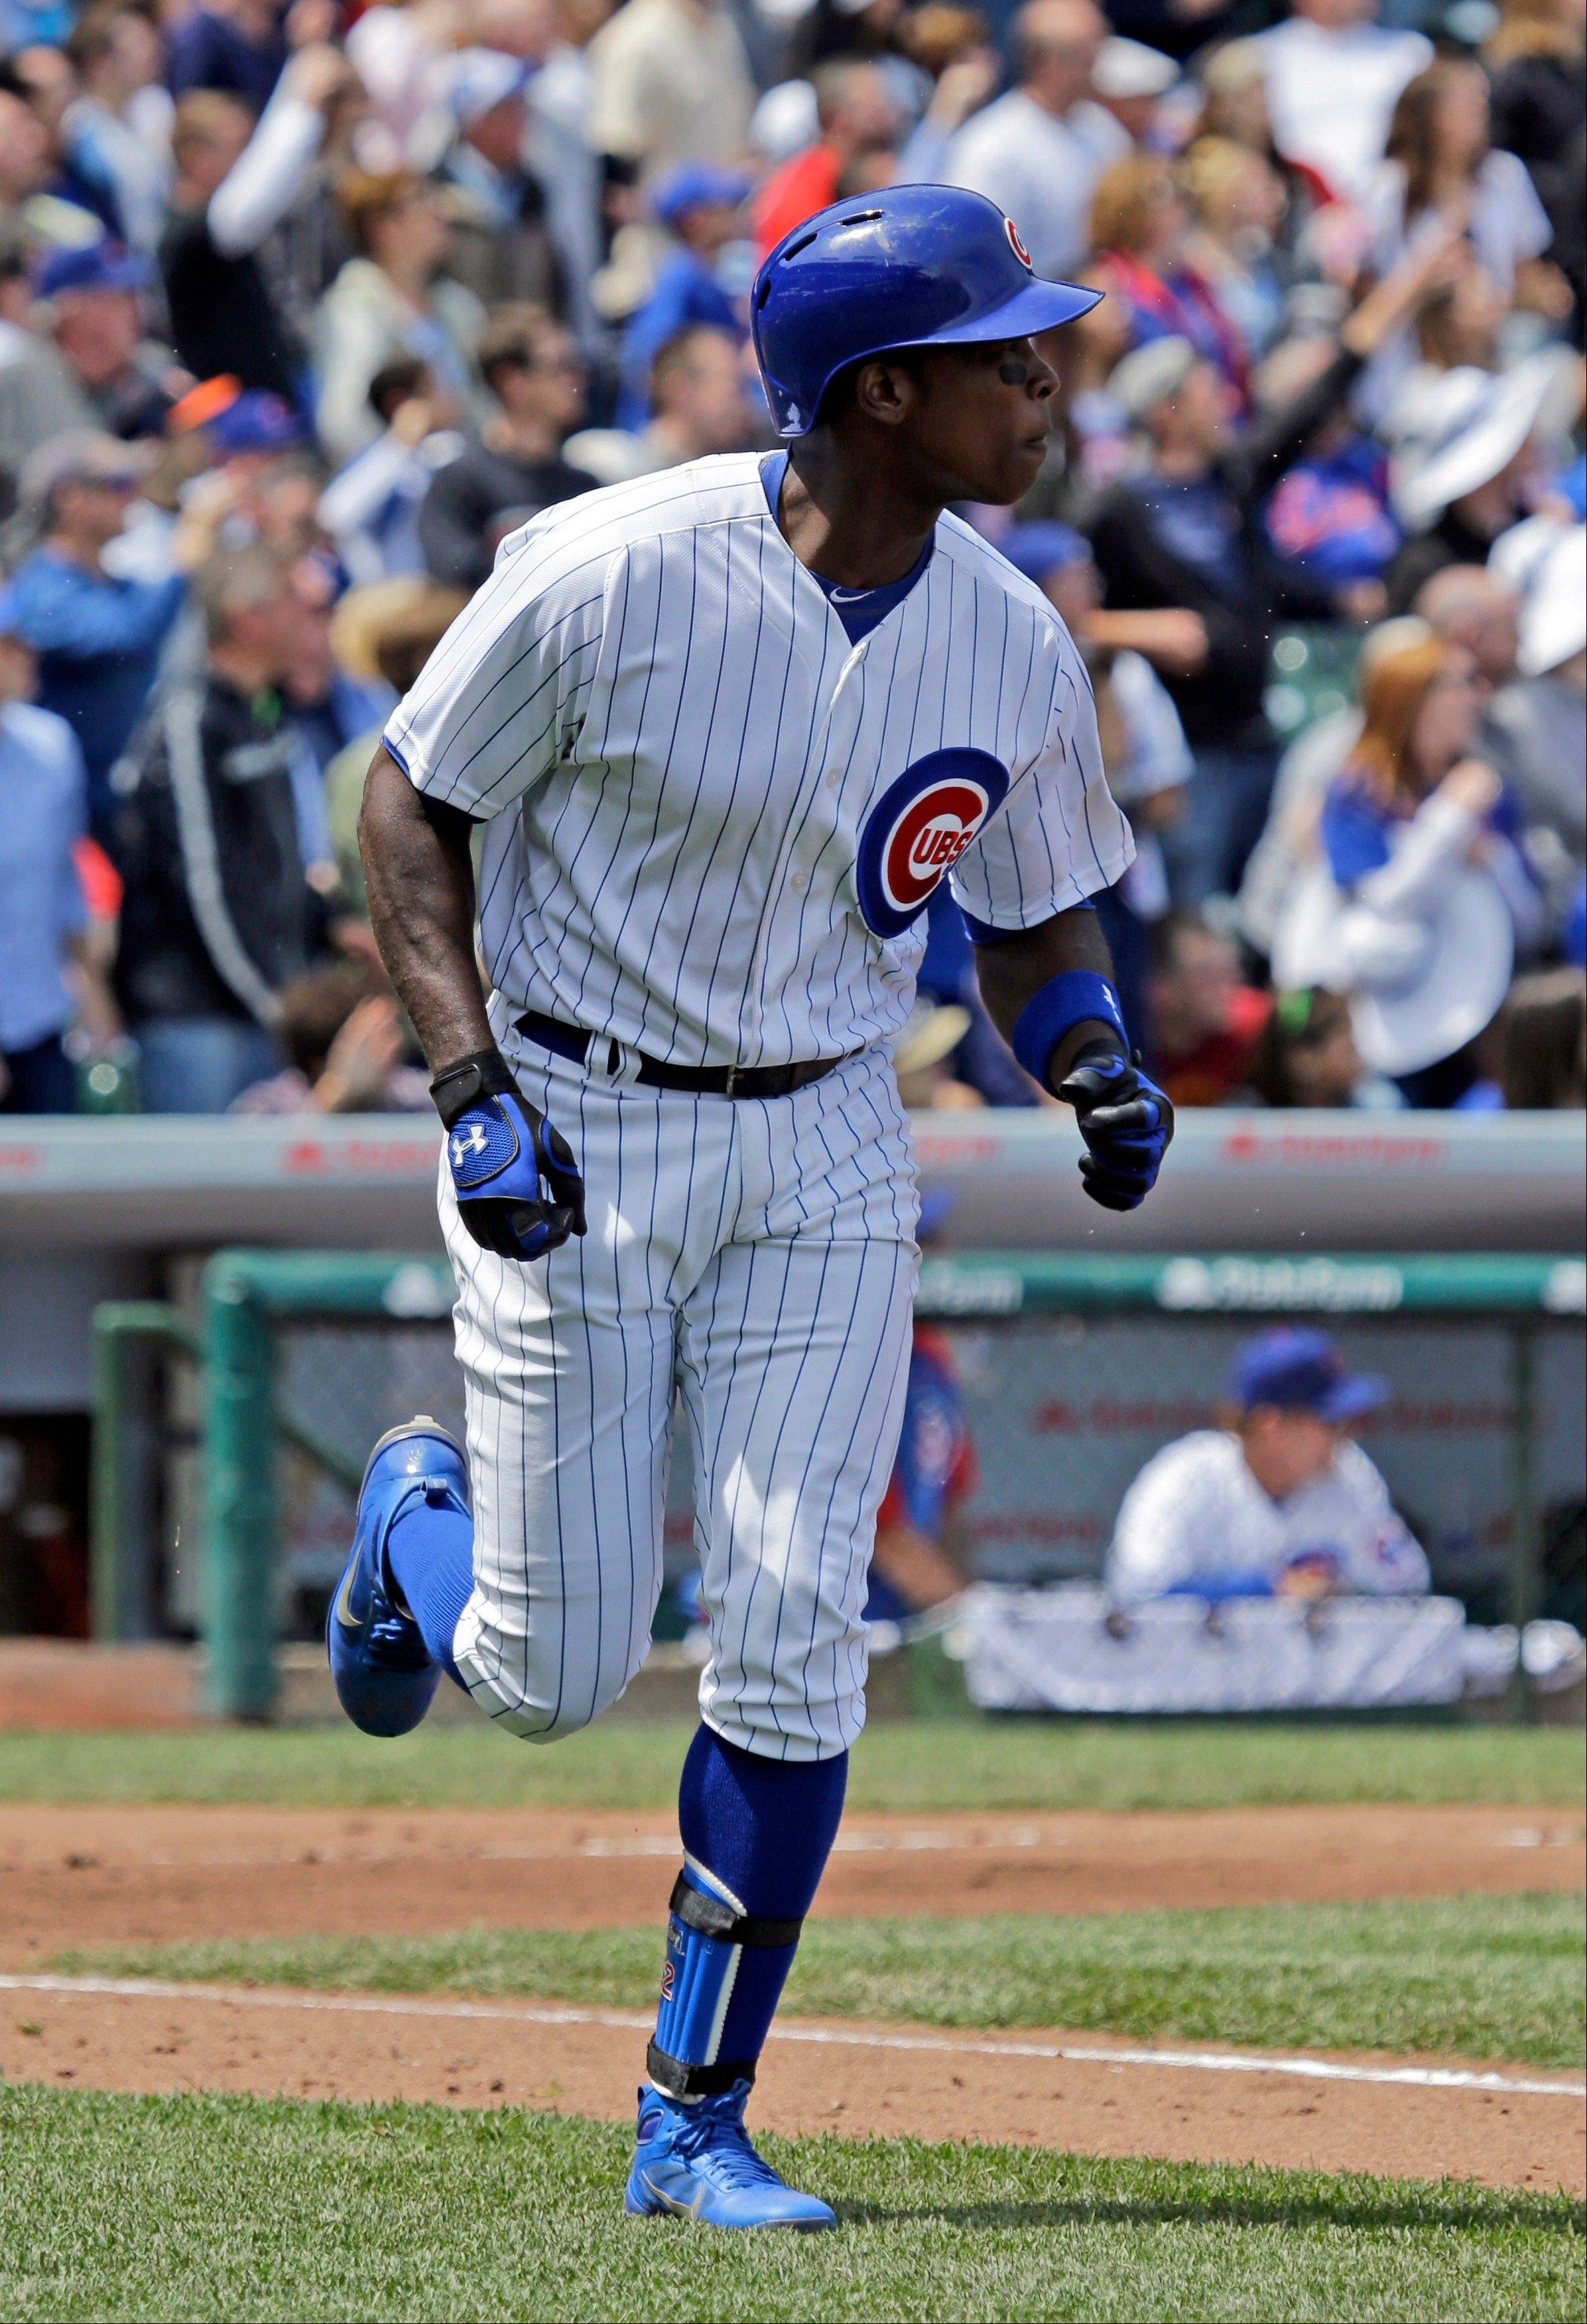 Alfonso Soriano runs up the first baseline after hitting a 2-run home run during the third inning Saturday.